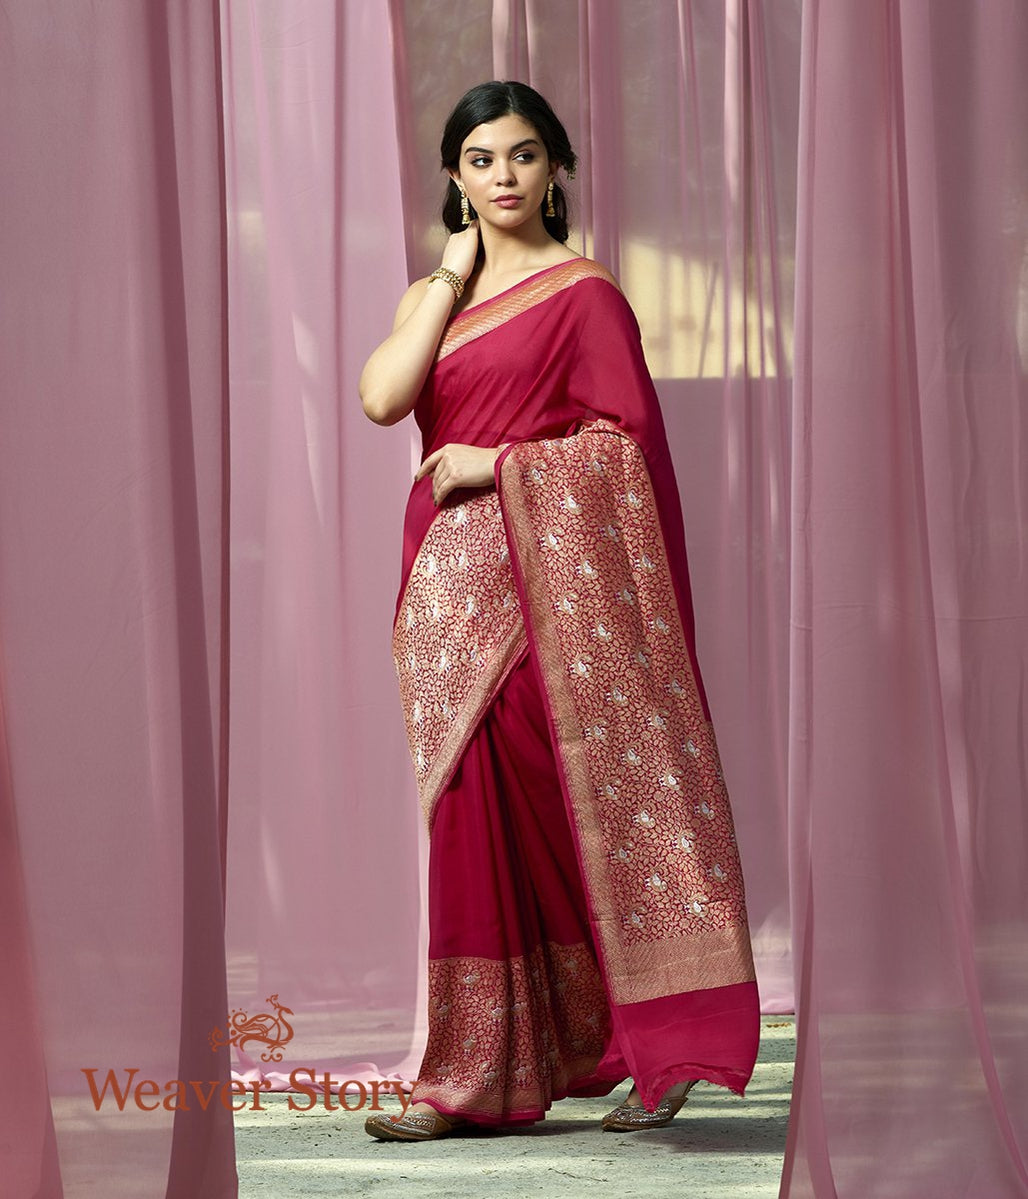 Handwoven Pink Banarasi Georgette Saree with Birds Woven on the Border